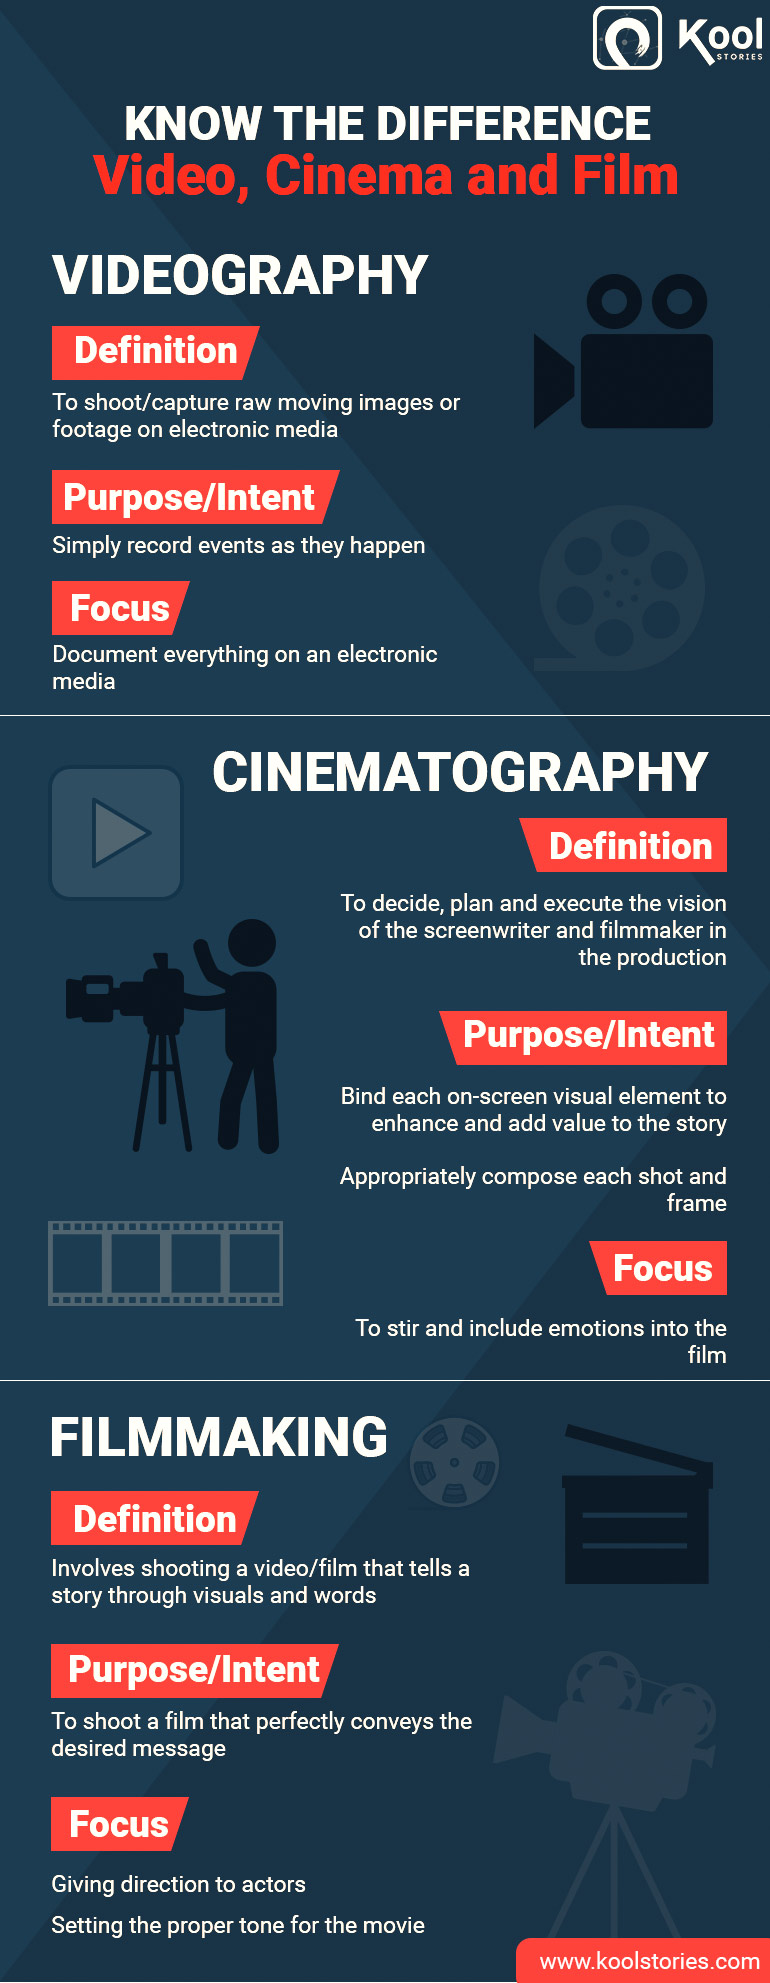 what is the best tricks for videography?